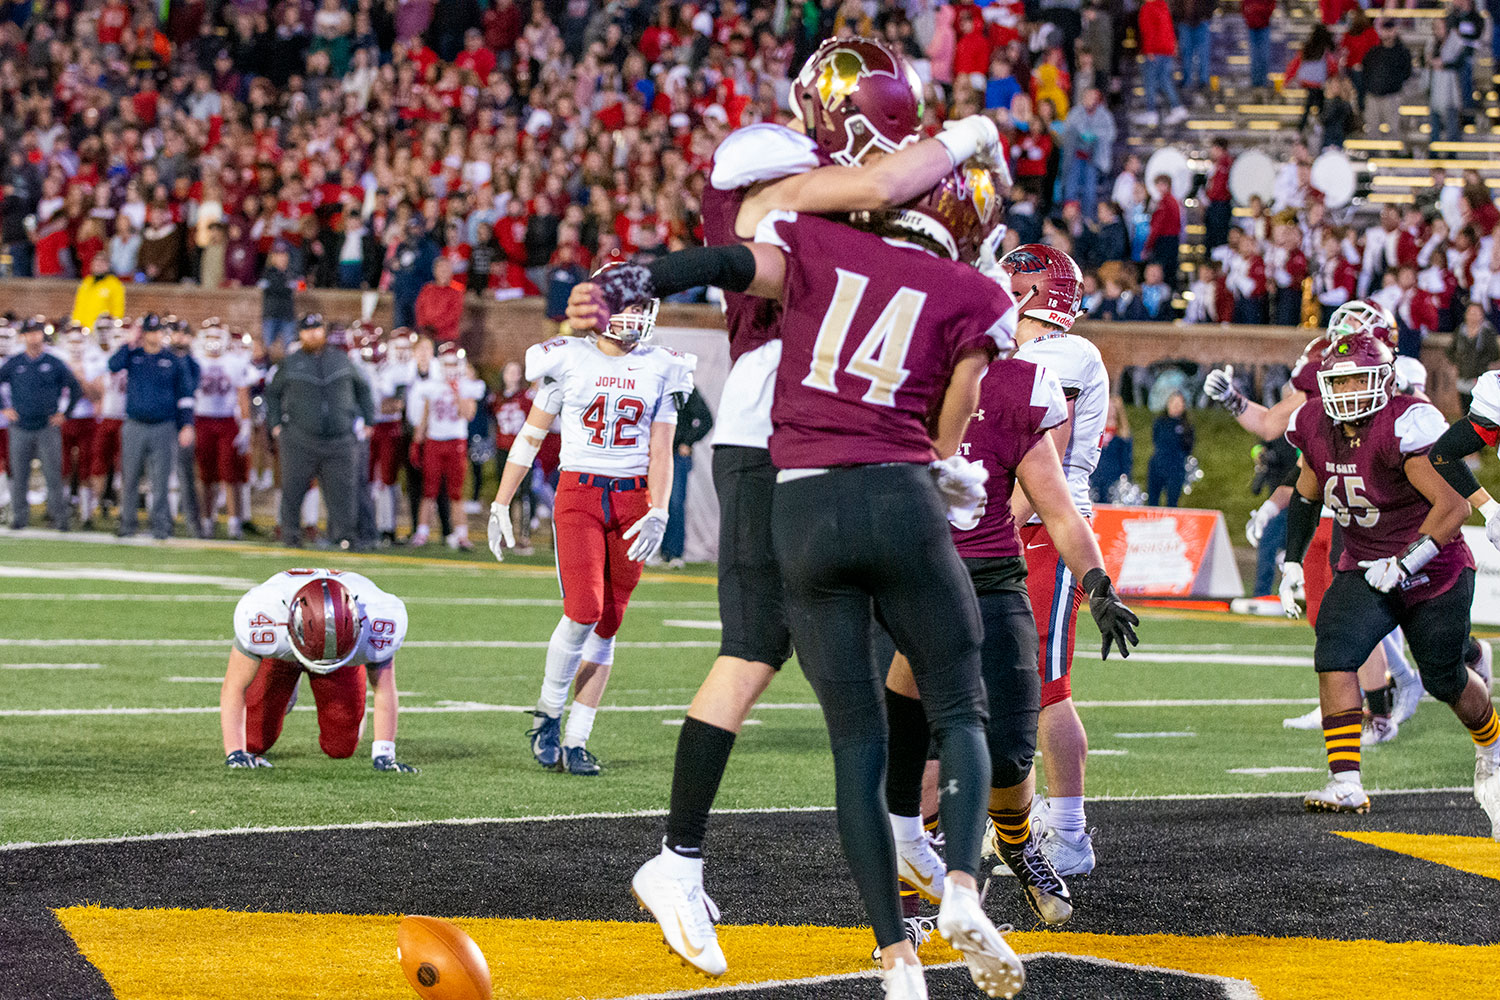 Senior QB Michael Wheeler scores a TD with 1:14 to play in the fourth quarter to give the Spartans a 35-20 lead in the state championship game against Joplin.